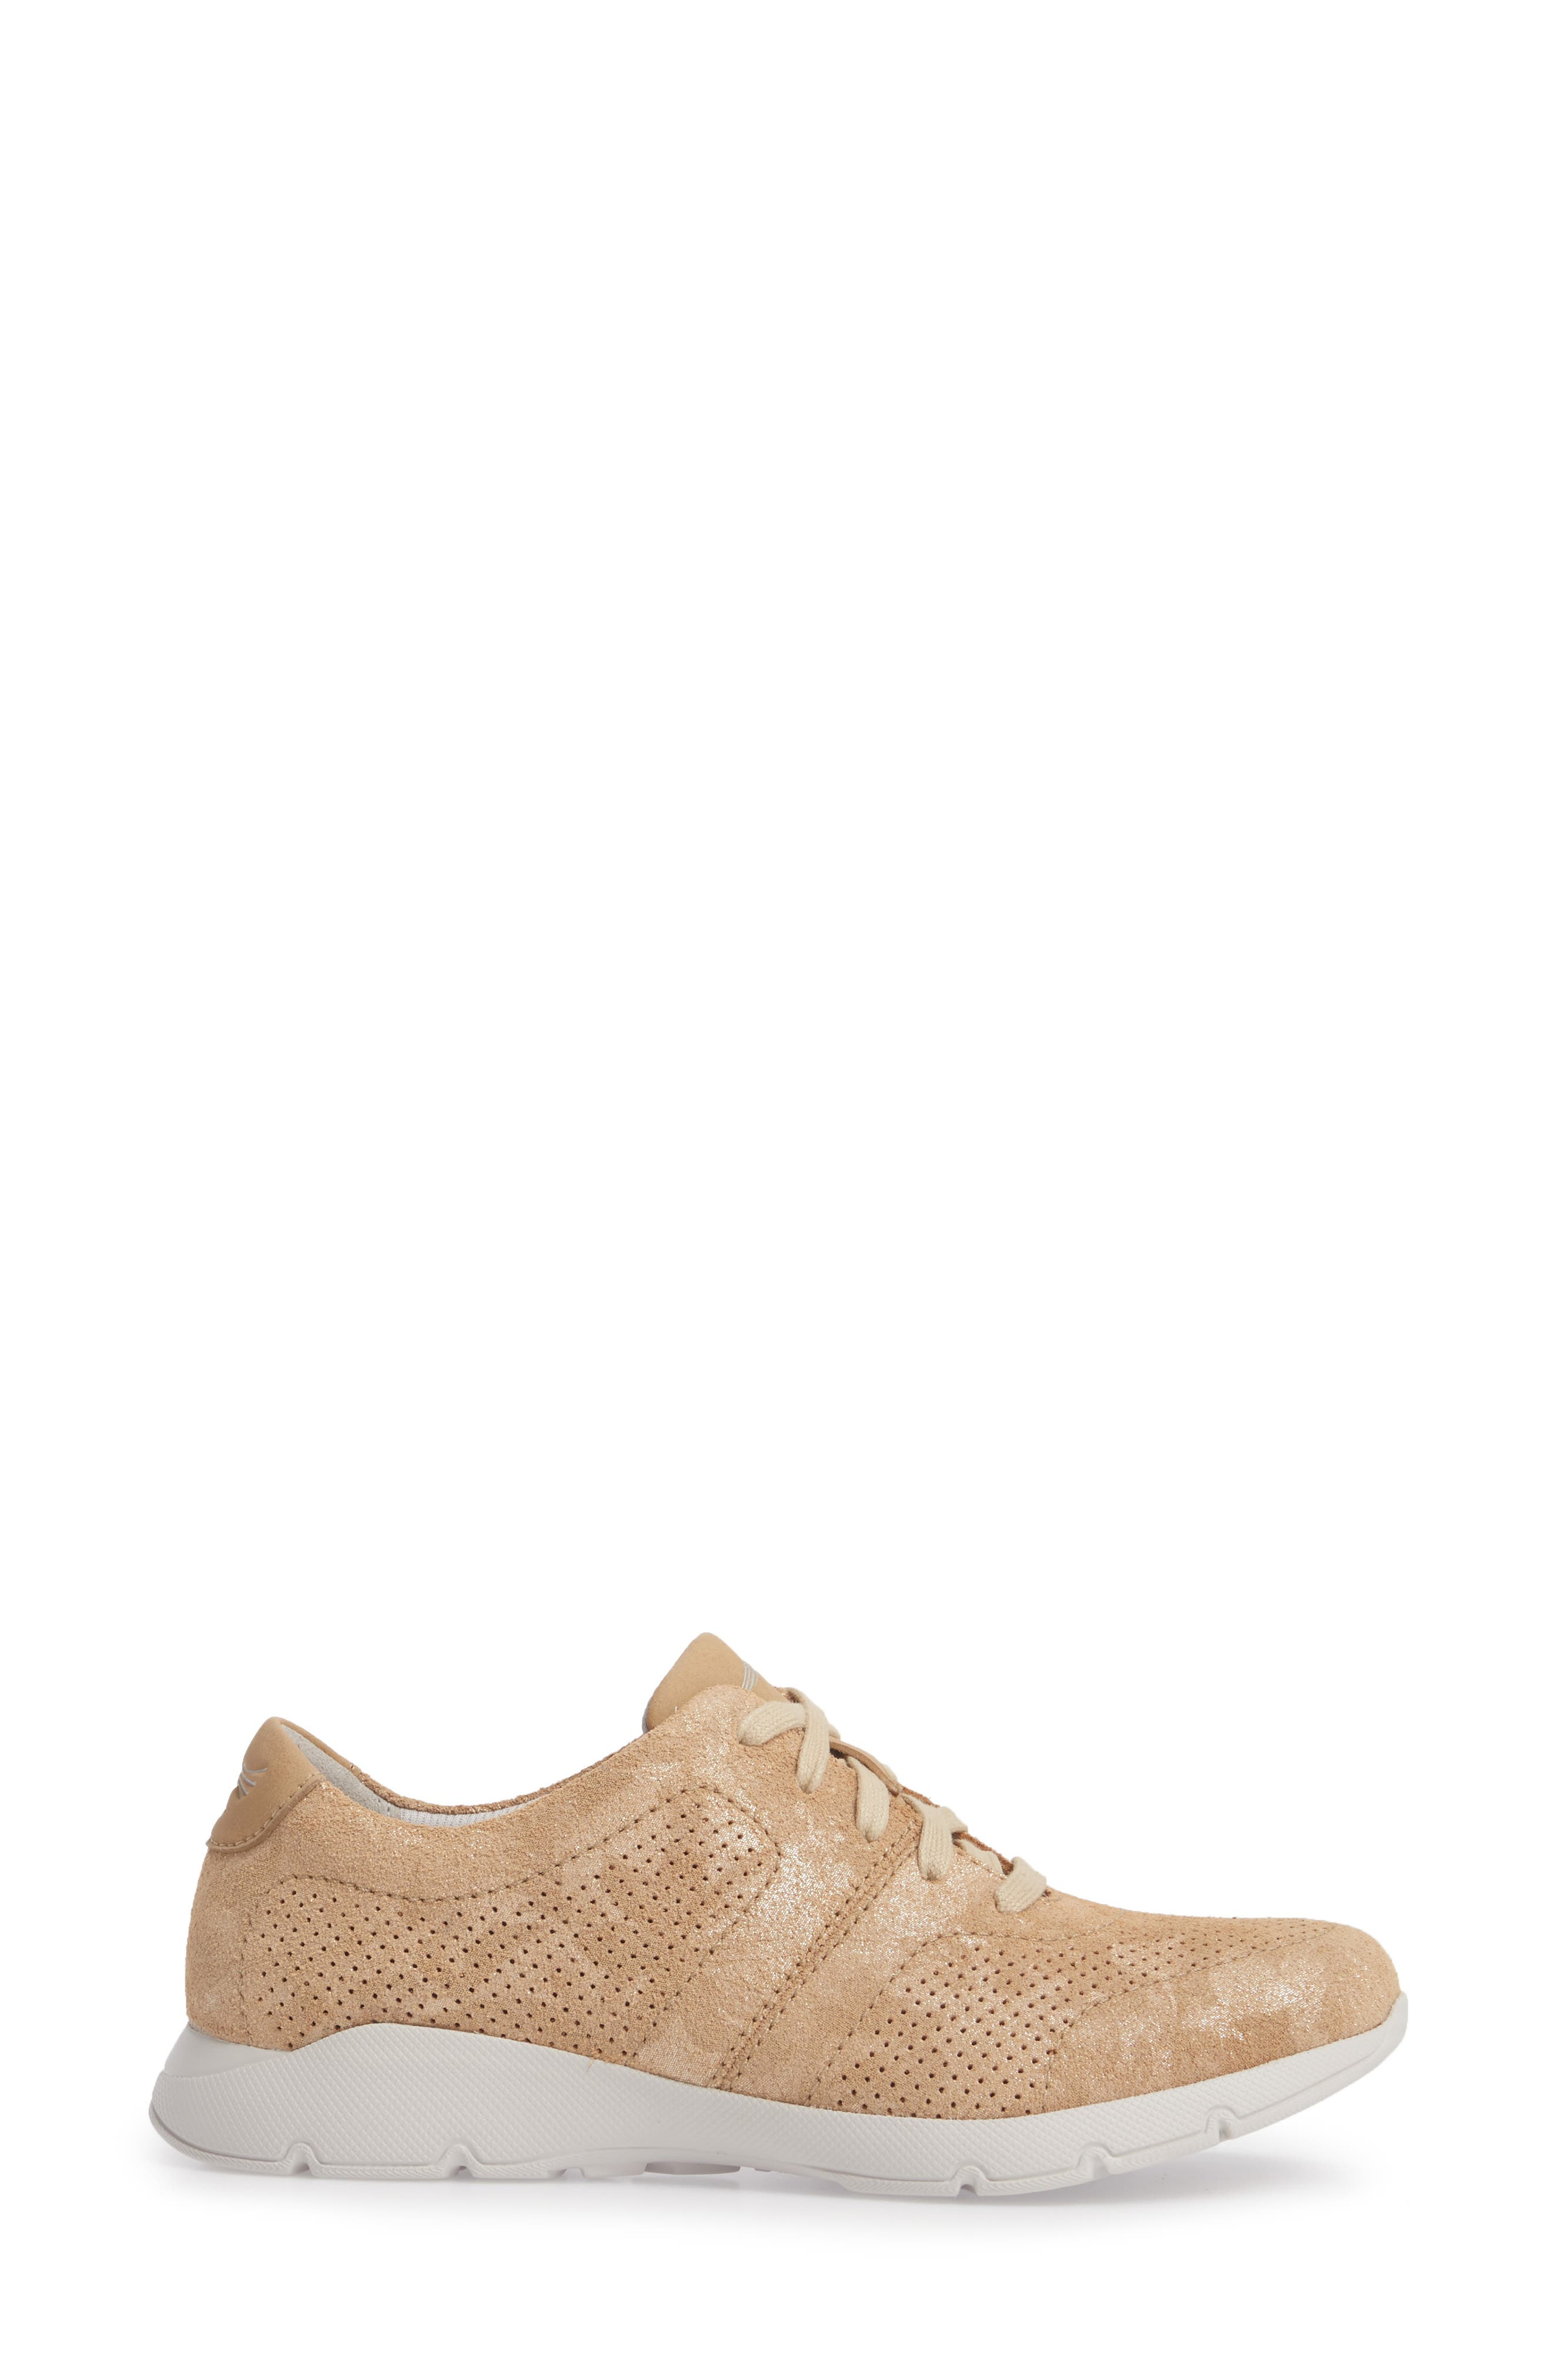 Alissa Sneaker,                             Alternate thumbnail 3, color,                             GOLD PRINT LEATHER